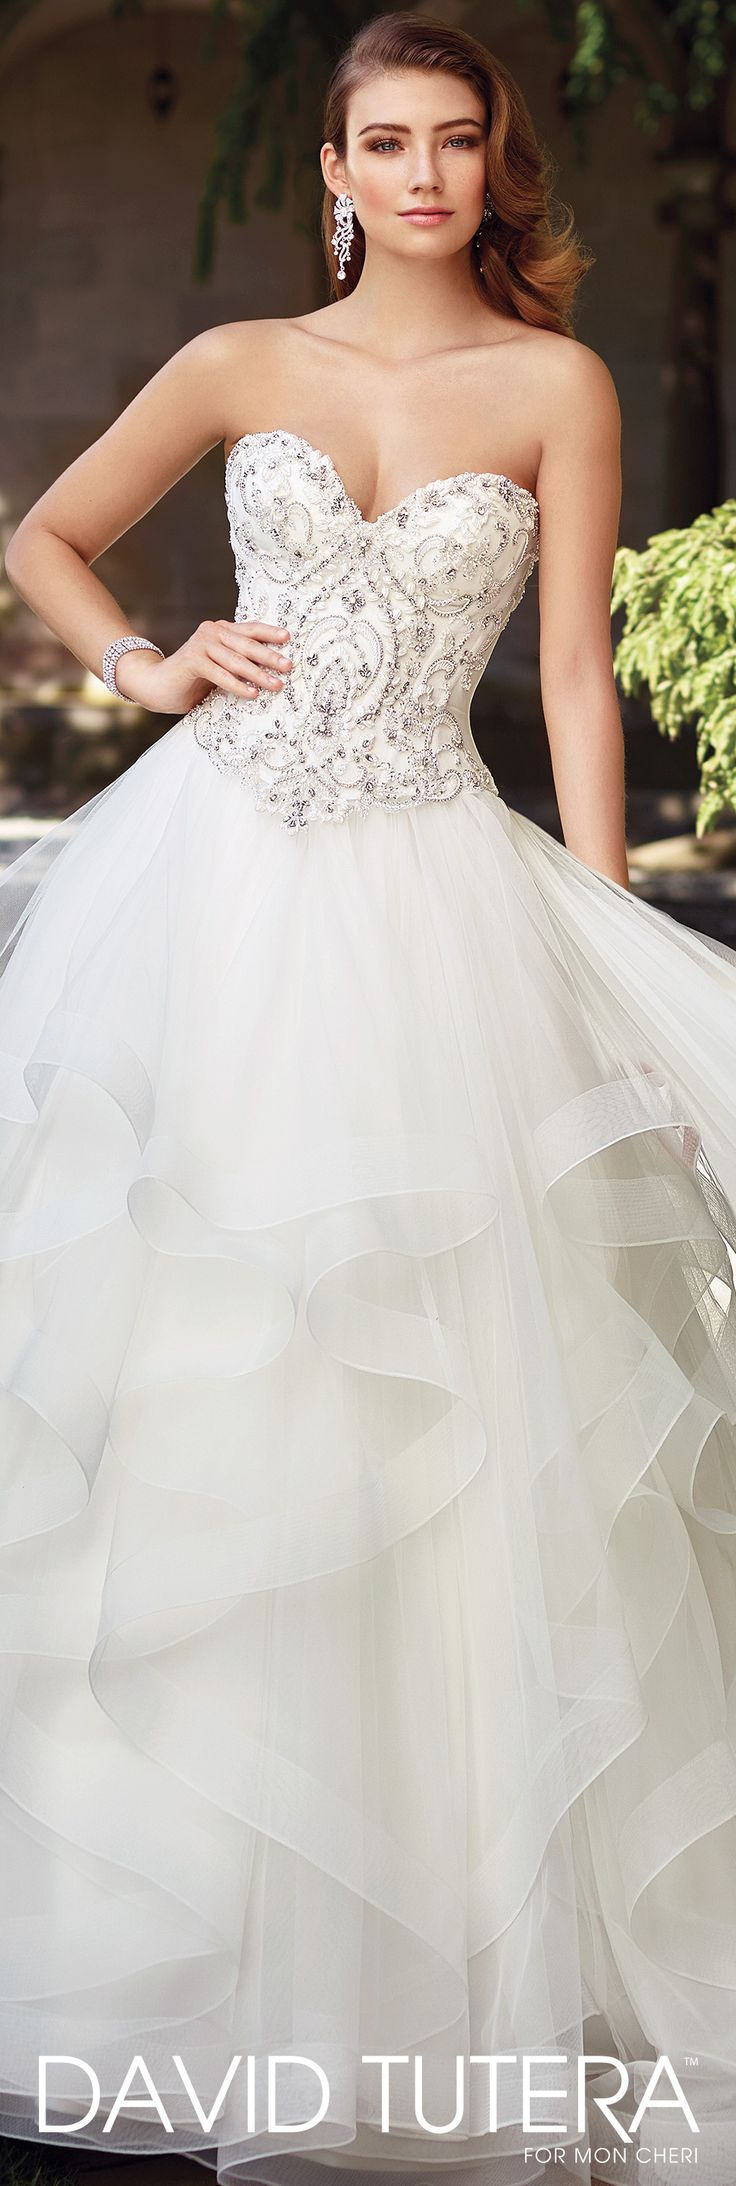 David Tutera for Mon Cheri Spring 2017 Collection - Style No. 117289 Charity - strapless tulle ball gown wedding dress with asymmetrically layered full skirt